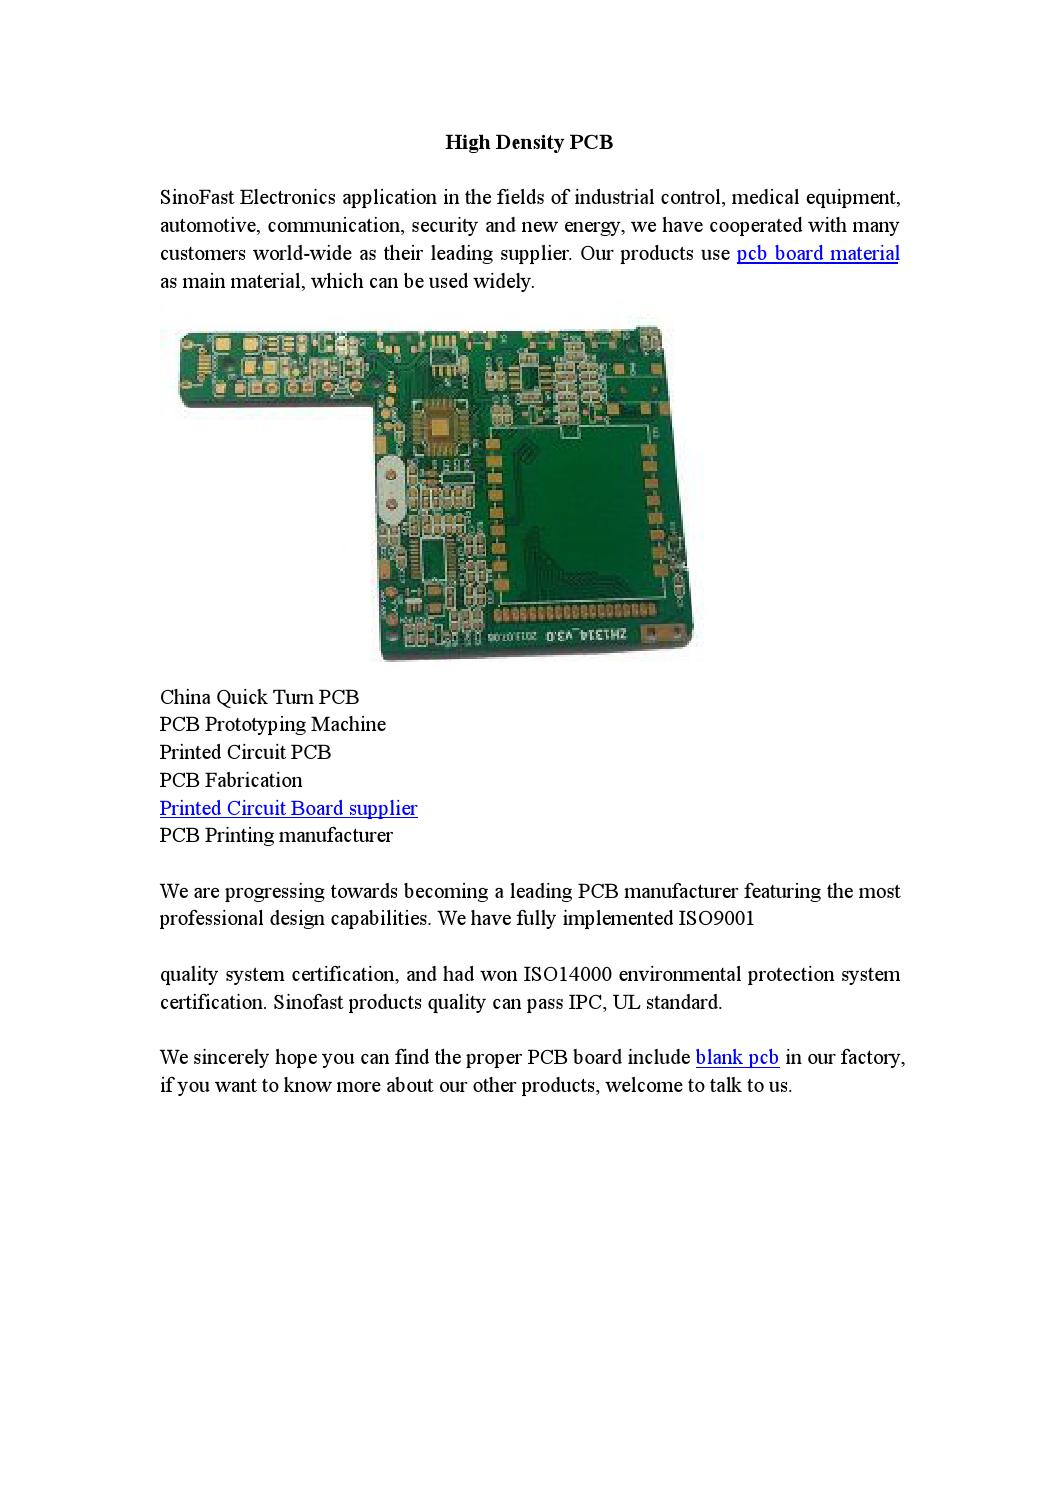 High Density Pcb By Shenzhen Sinofast Electronics Coltd Issuu Circuit Board Low Cost Fabrication China